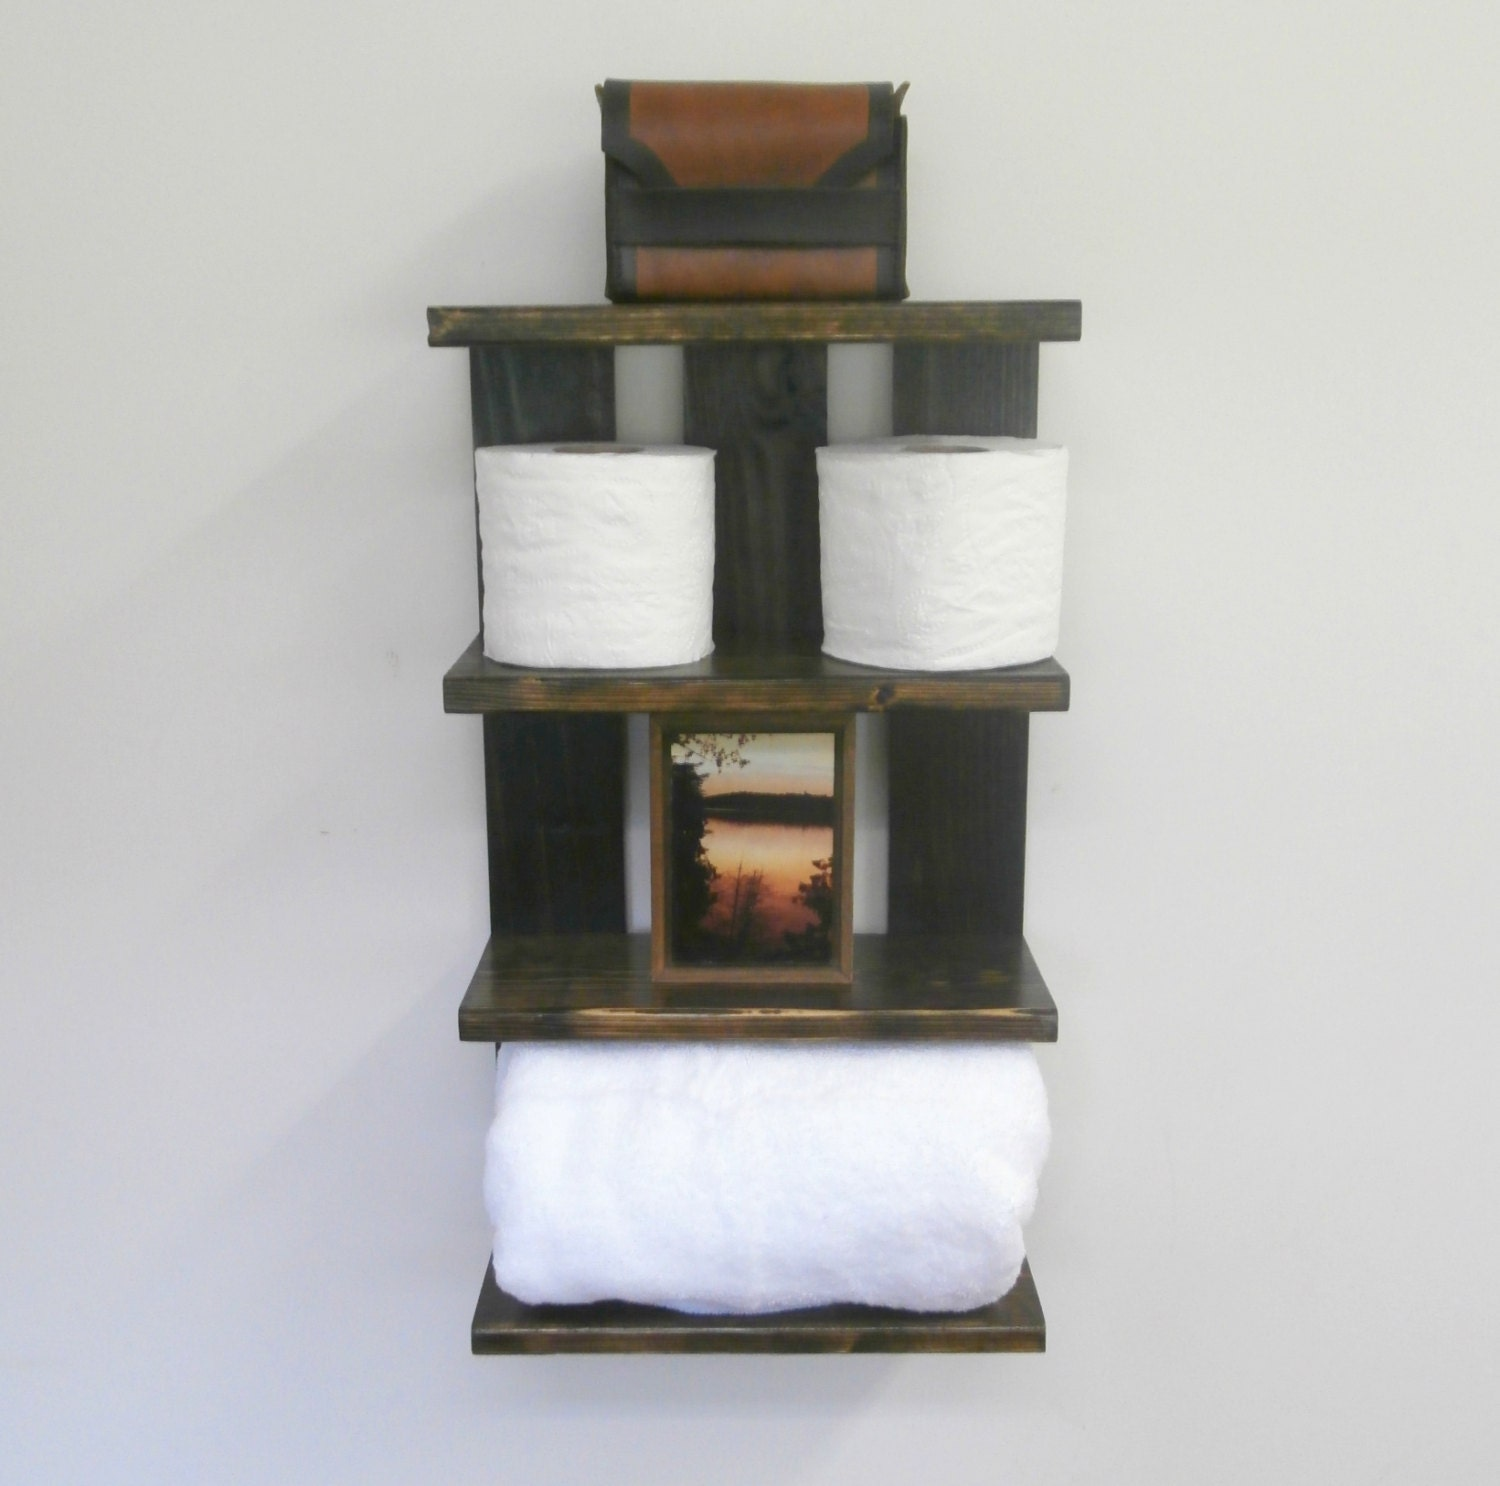 Bathroom Open Shelving For Towels Rolled Bath Towel Wall